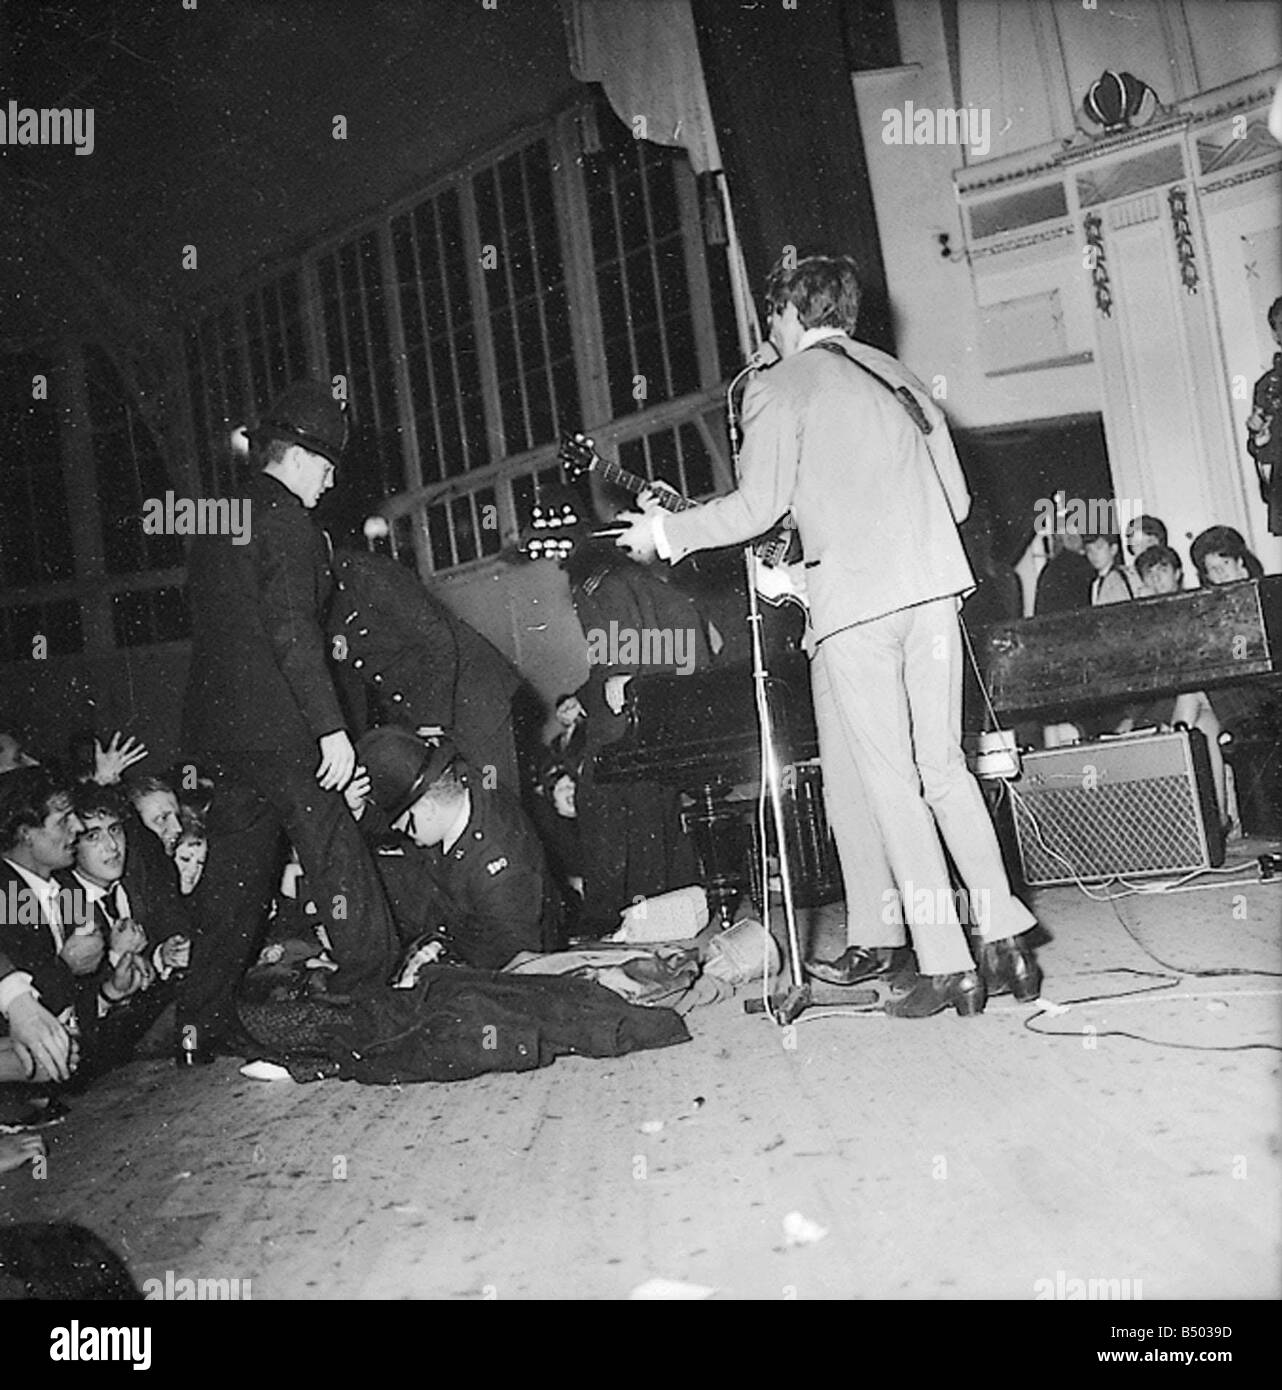 Beatles Files The In Concert Where Police Came On Stage After Crowds Got Out Of Control During Derbyshire